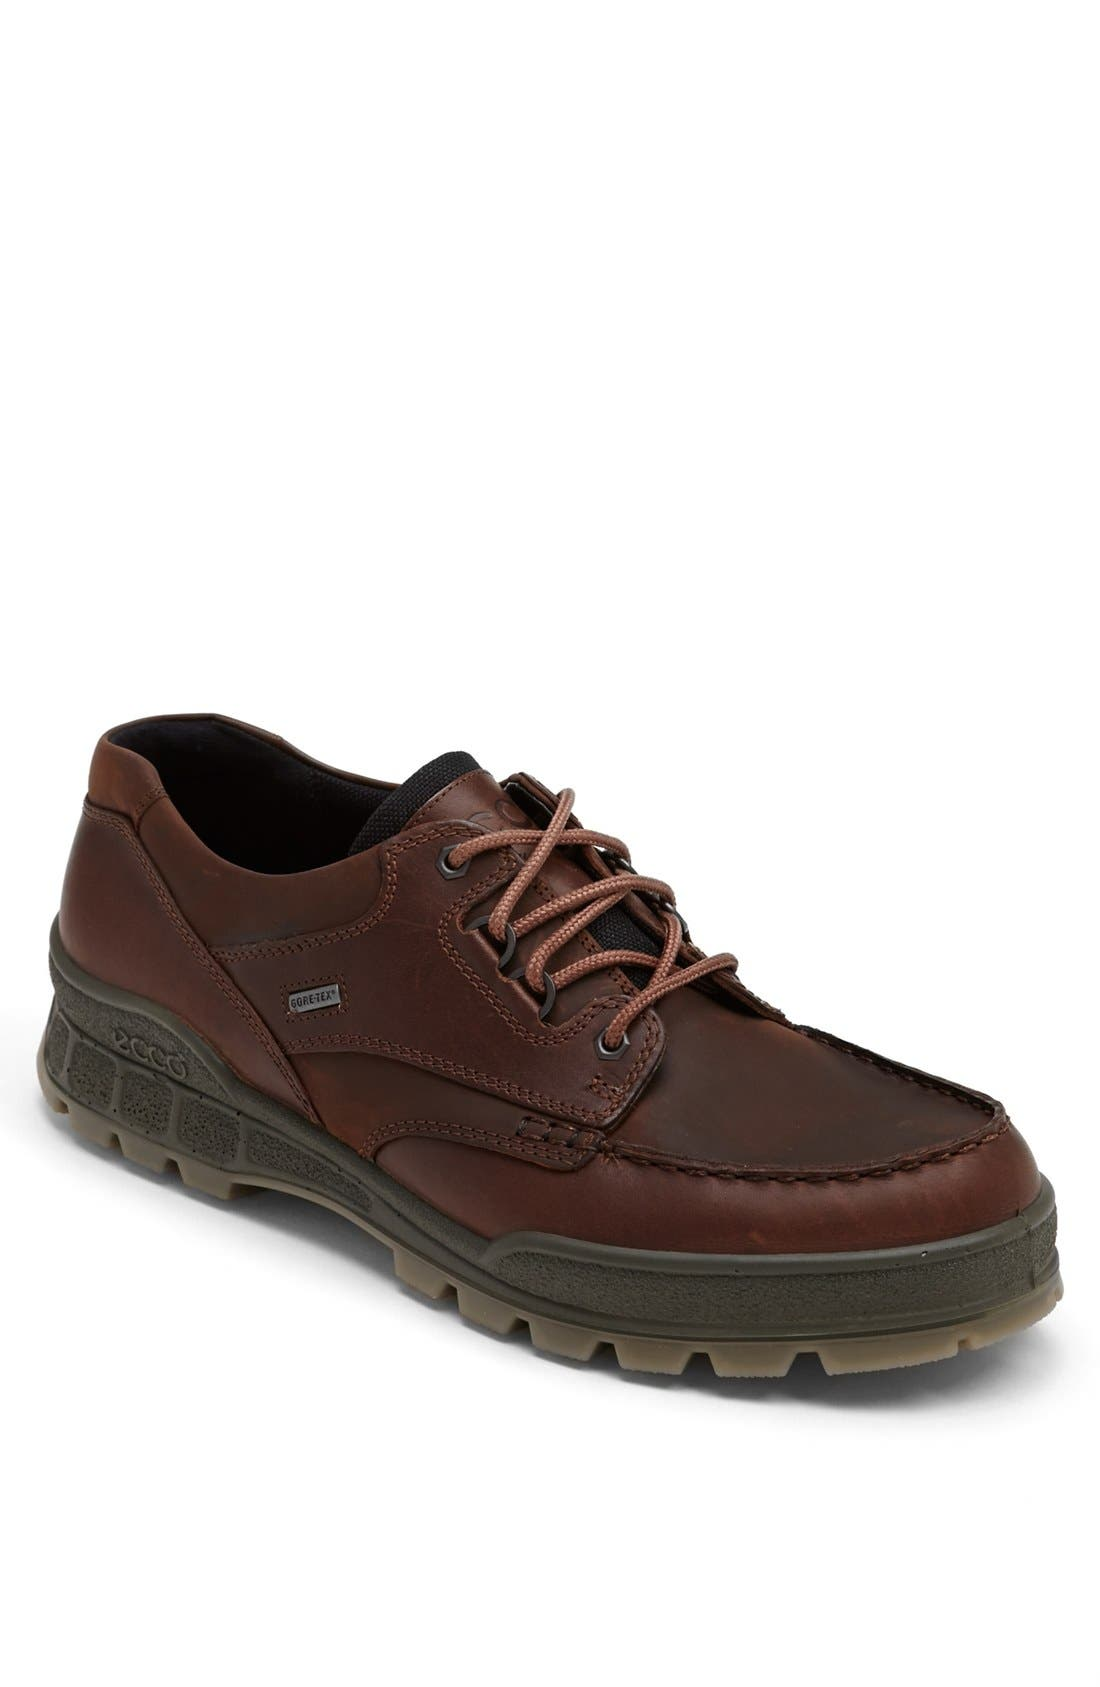 Main Image - ECCO 'Track II Moc Low' Oxford (Men). Black Leather swatch  image Brown ...